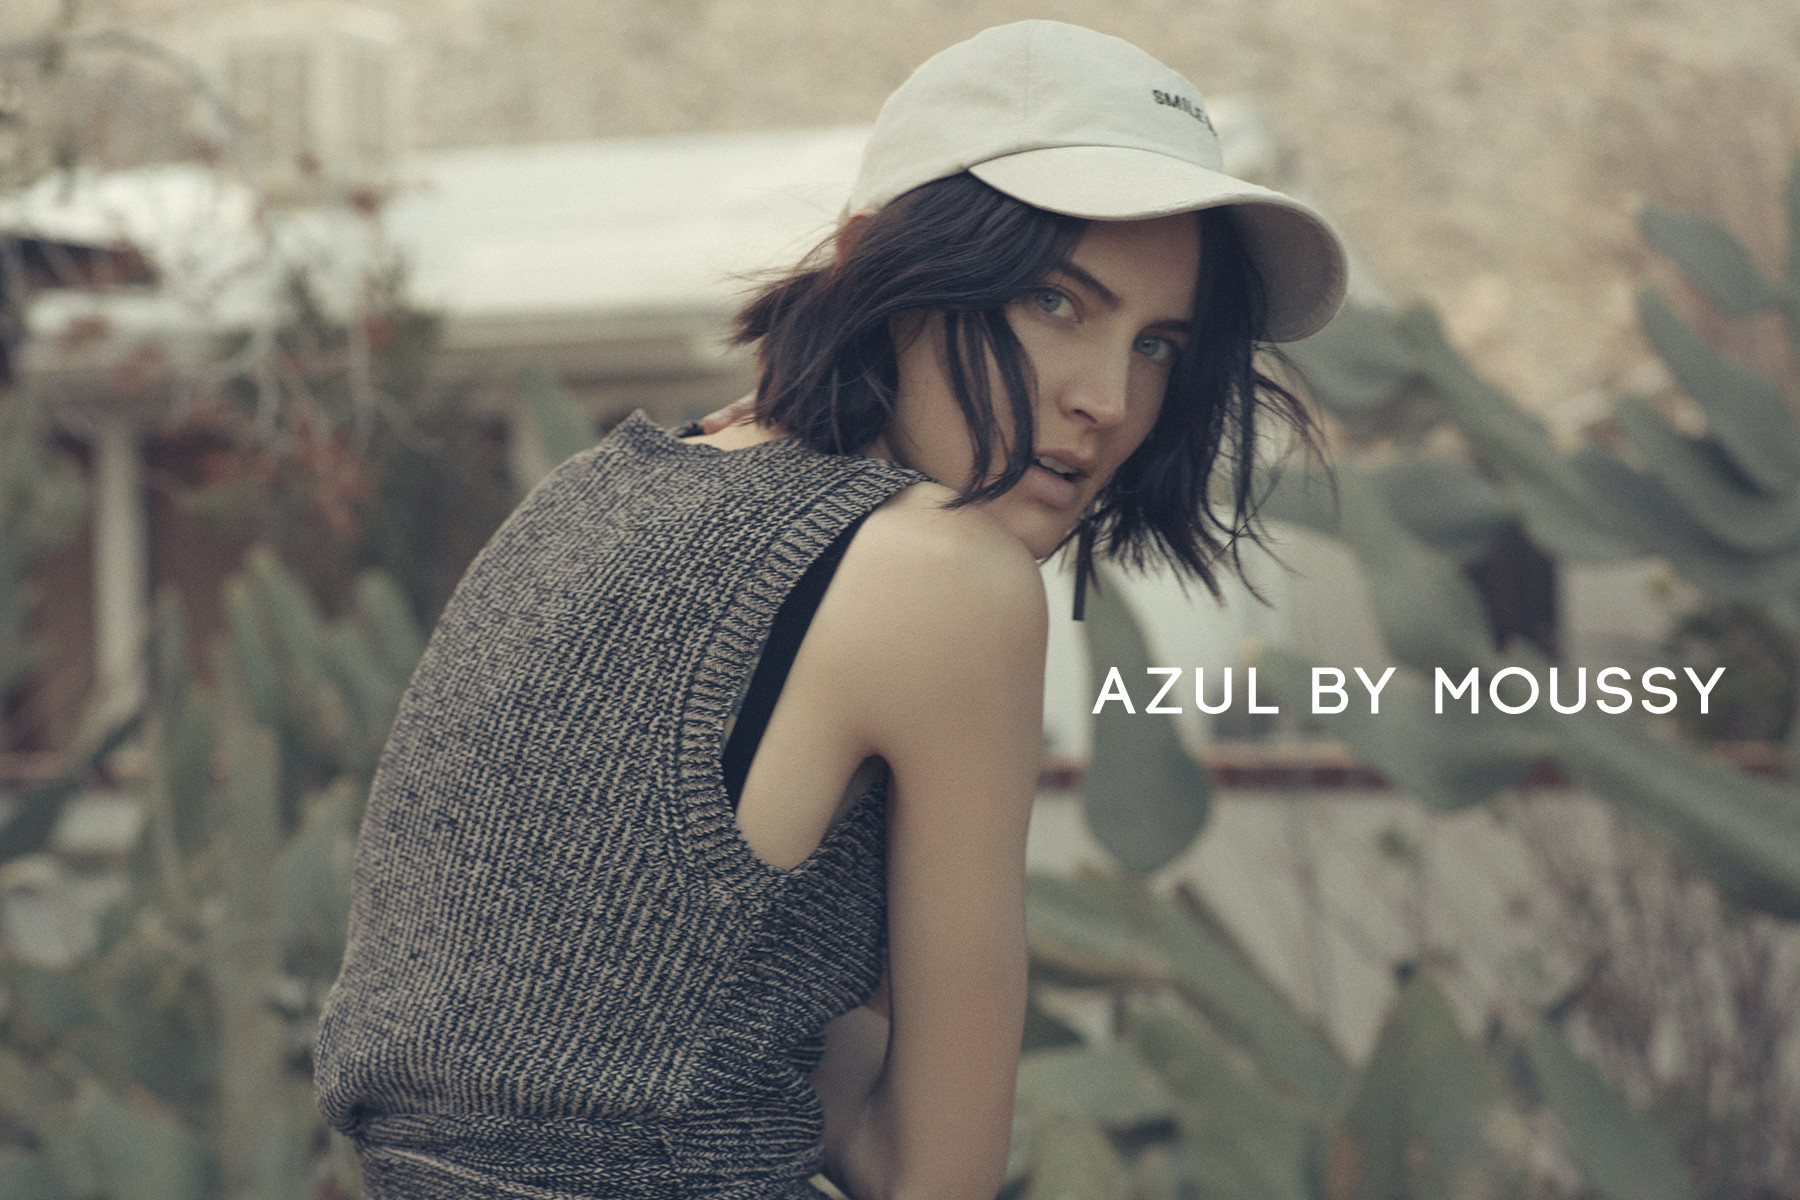 AZUL by moussy(アズールバイマウジー) アリオ橋本店 のアルバイト情報